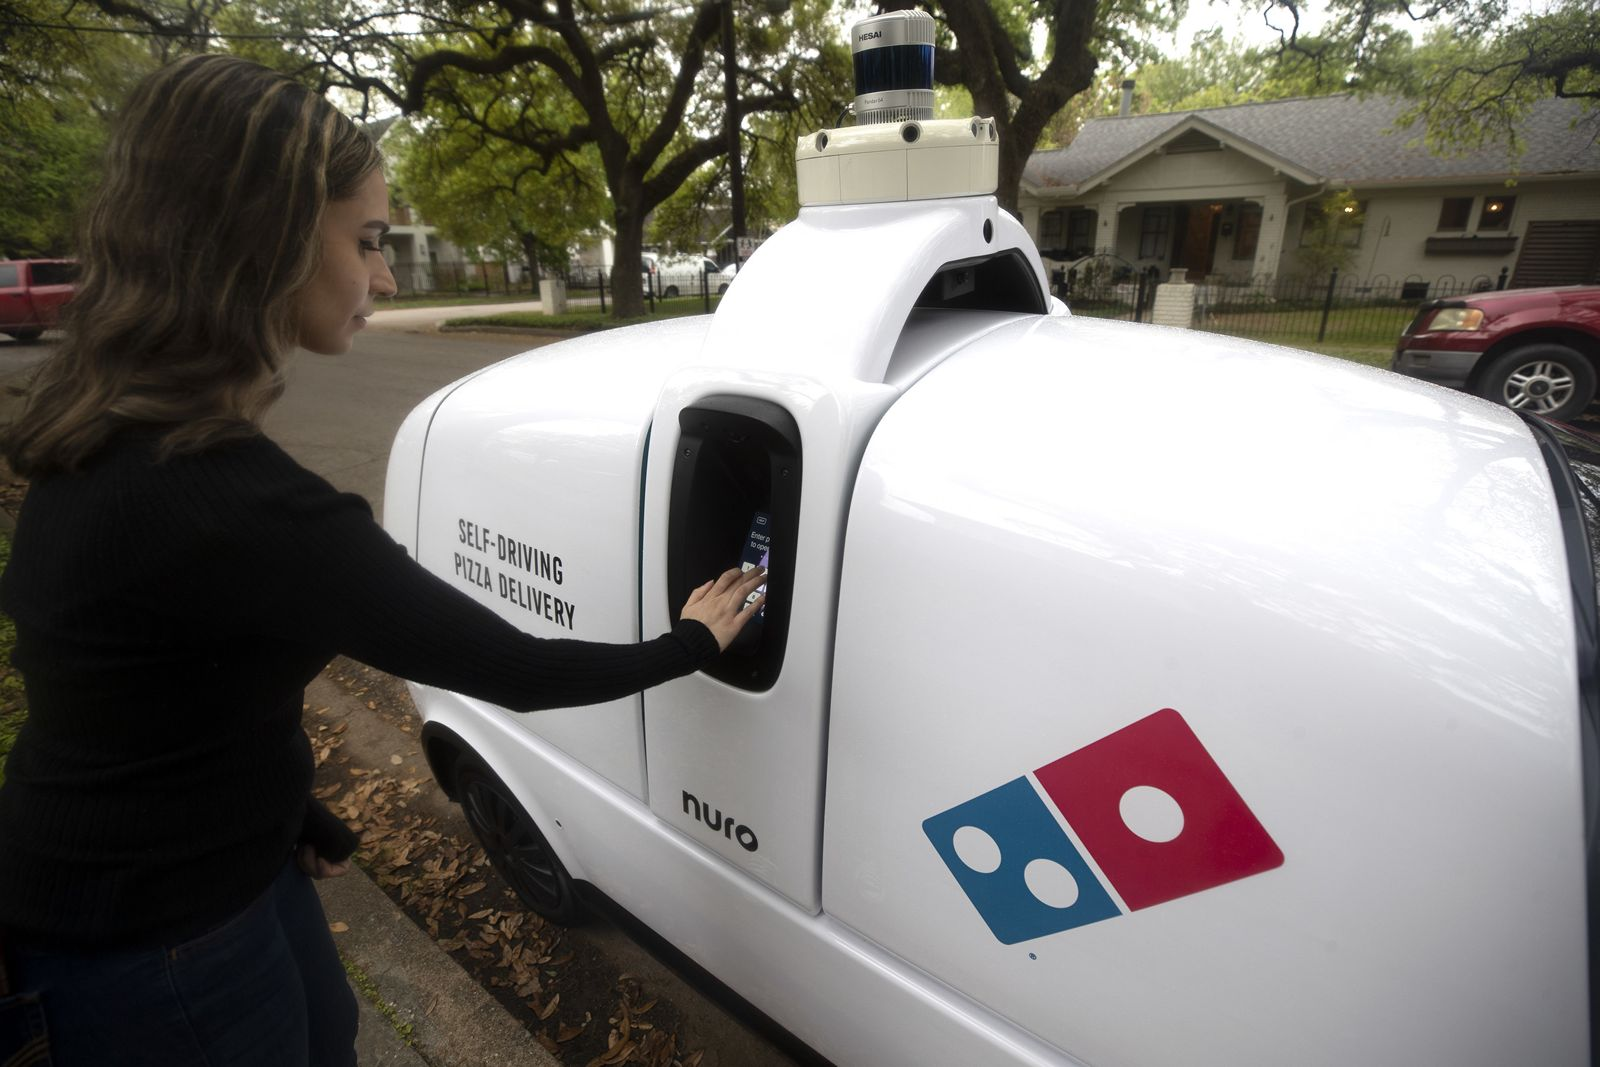 Domino's and Nuro Launch Autonomous Pizza Delivery with On-Road Robot